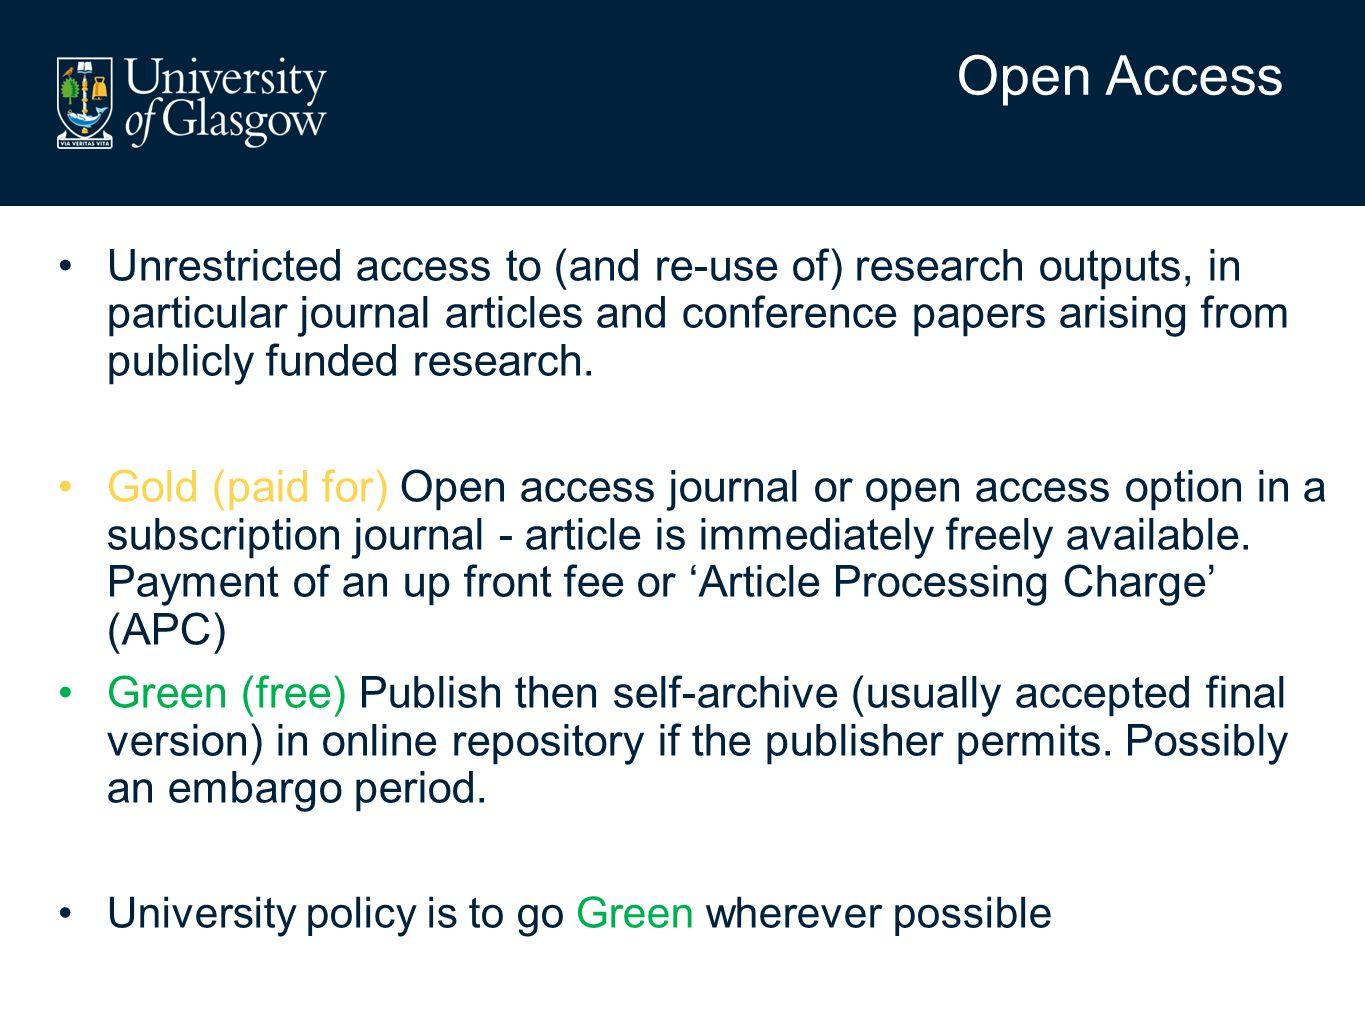 Open Access Unrestricted access to (and re-use of) research outputs, in particular journal articles and conference papers arising from publicly funded research.